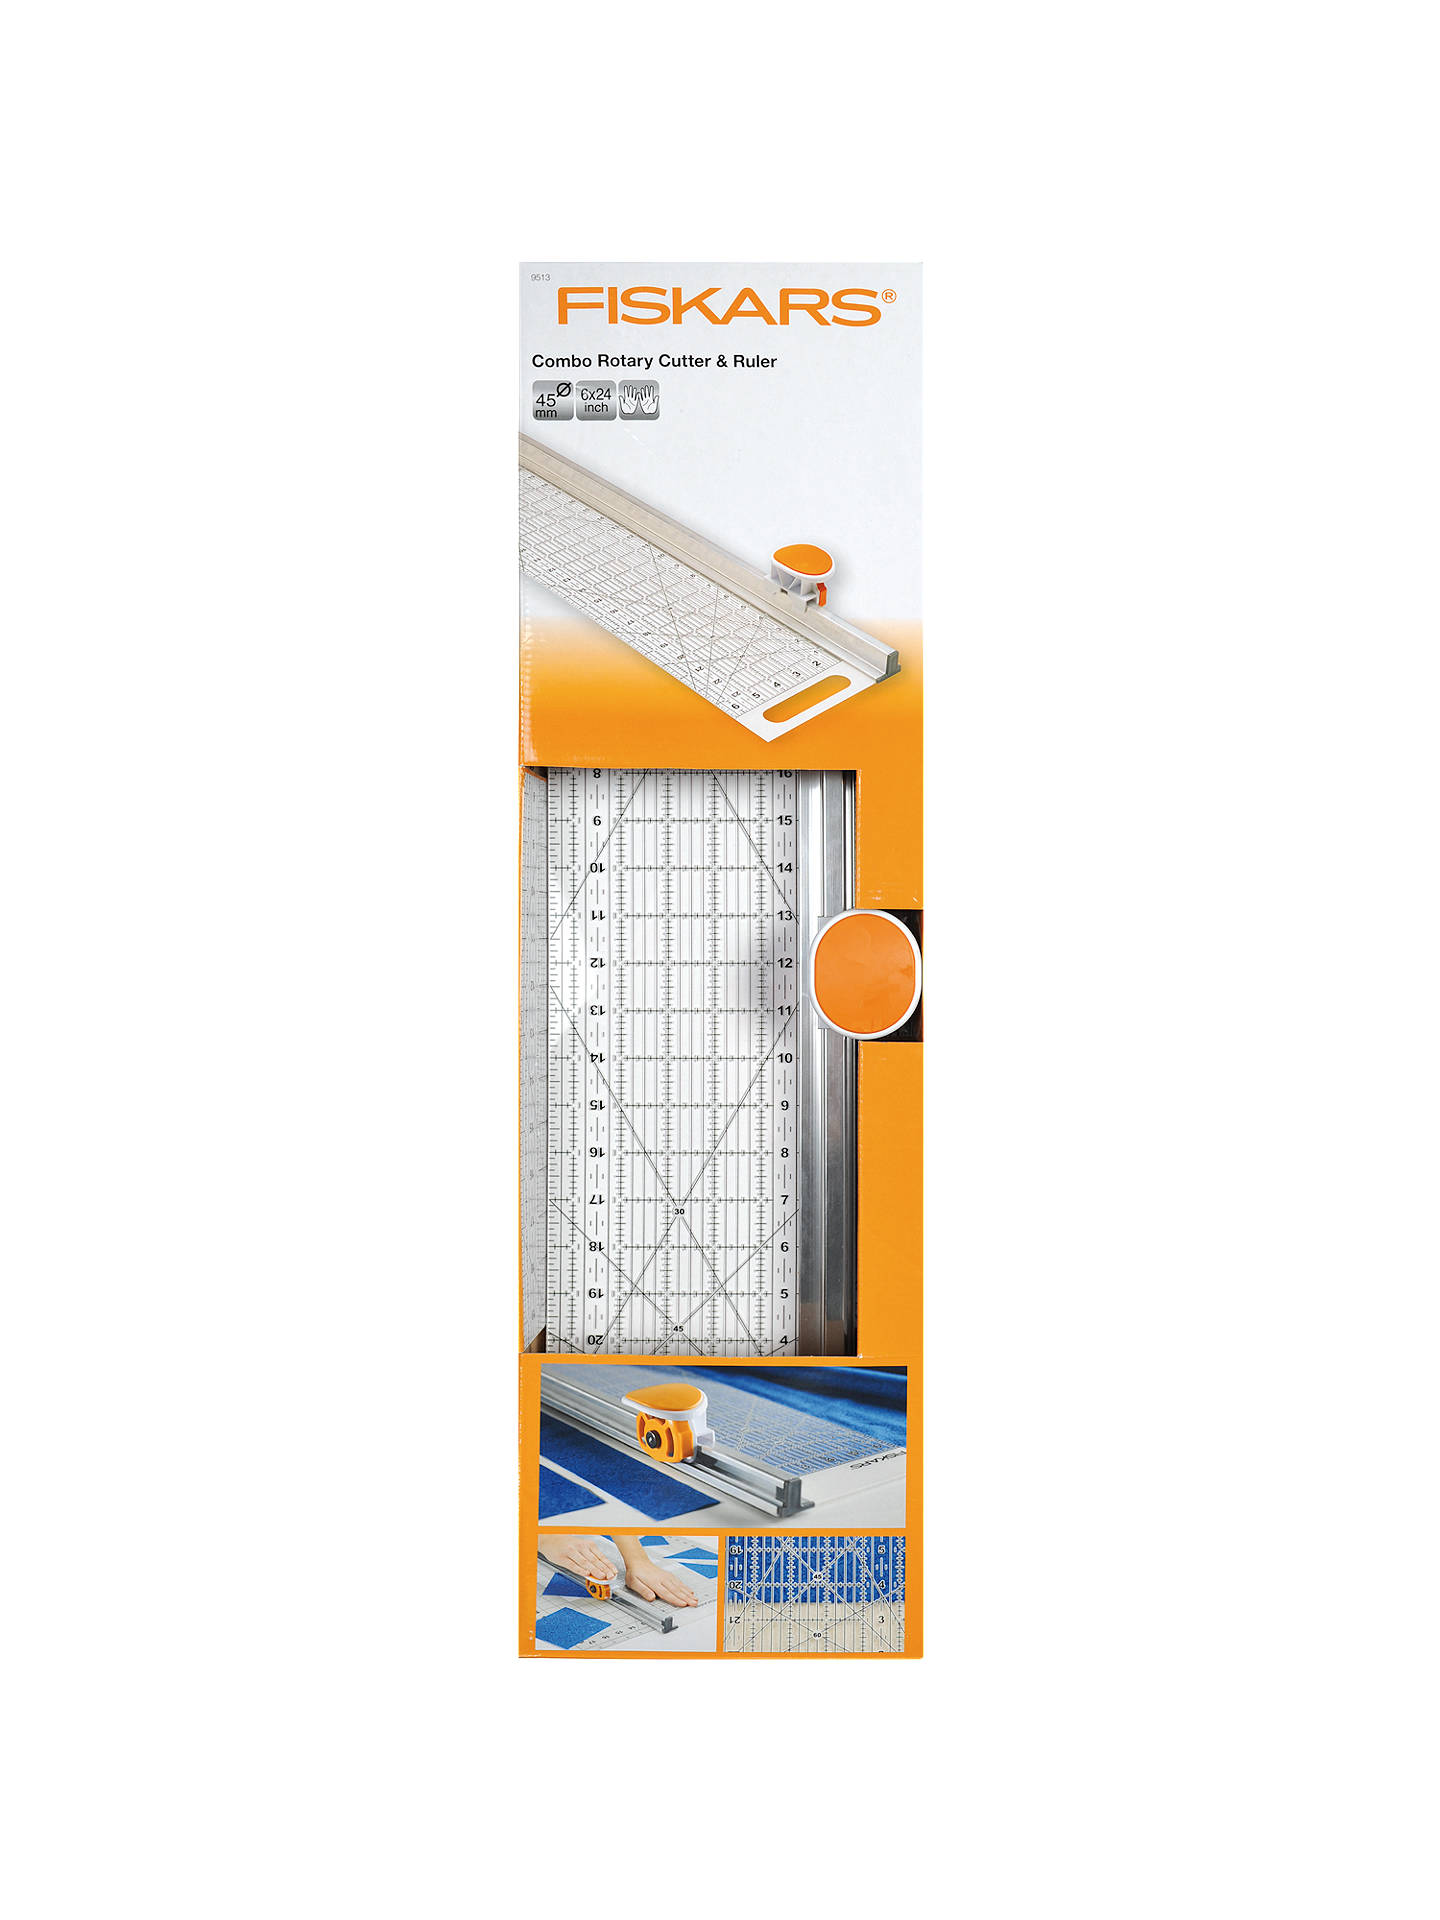 Fiskars Rotary Cutter and Ruler Combination, 6 x 24 Inches